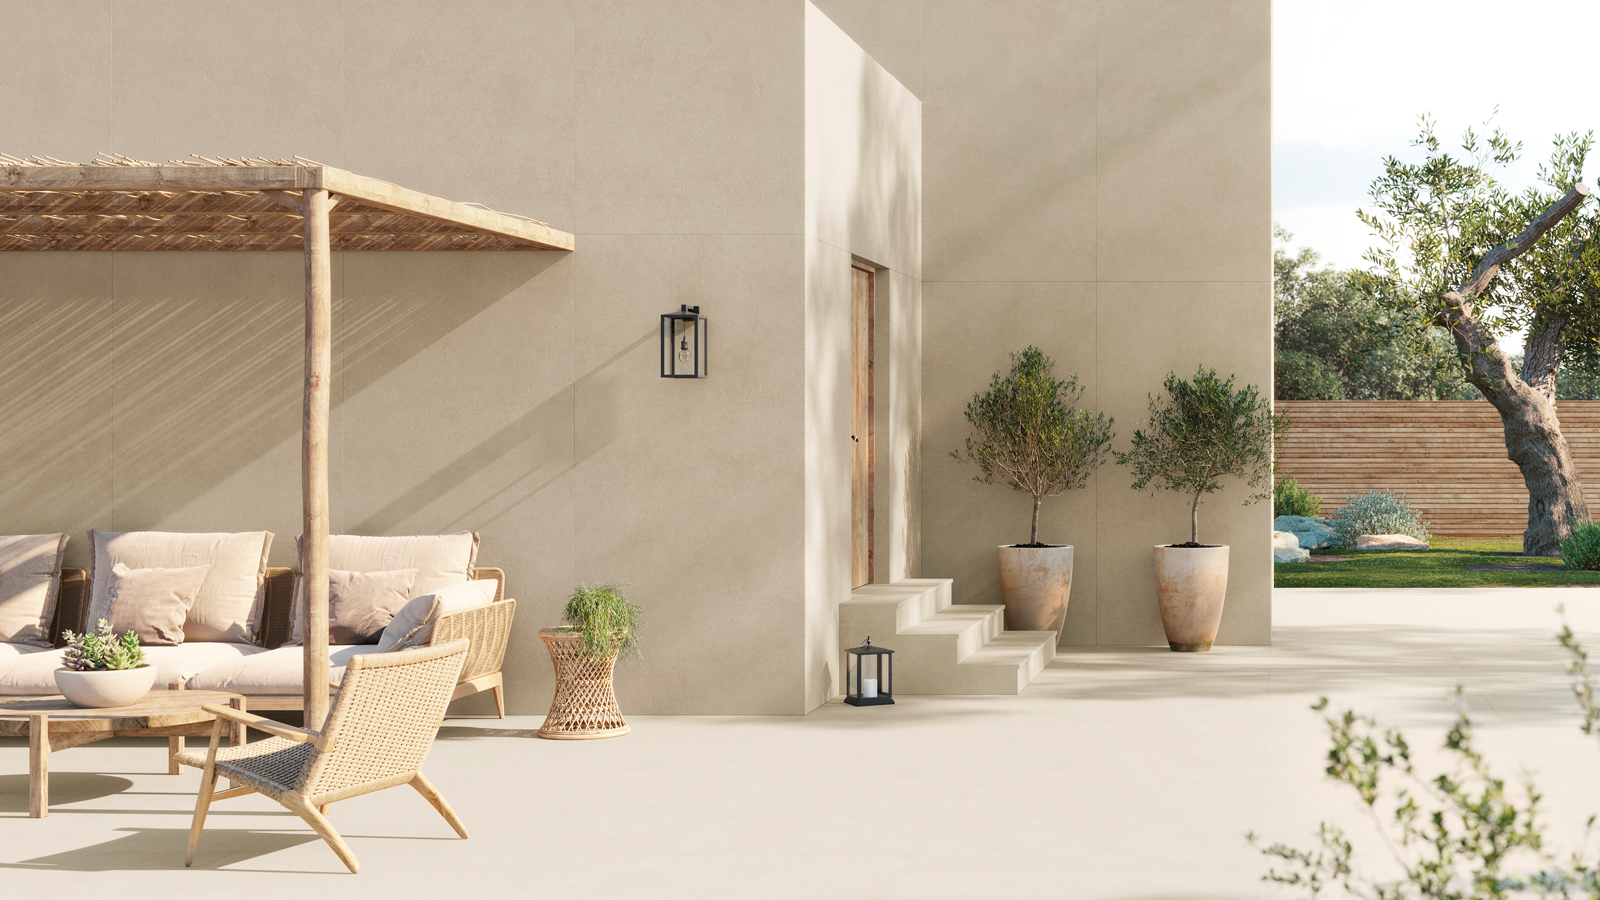 Stuc by XTONE, a neutral collection inspired by sandstone